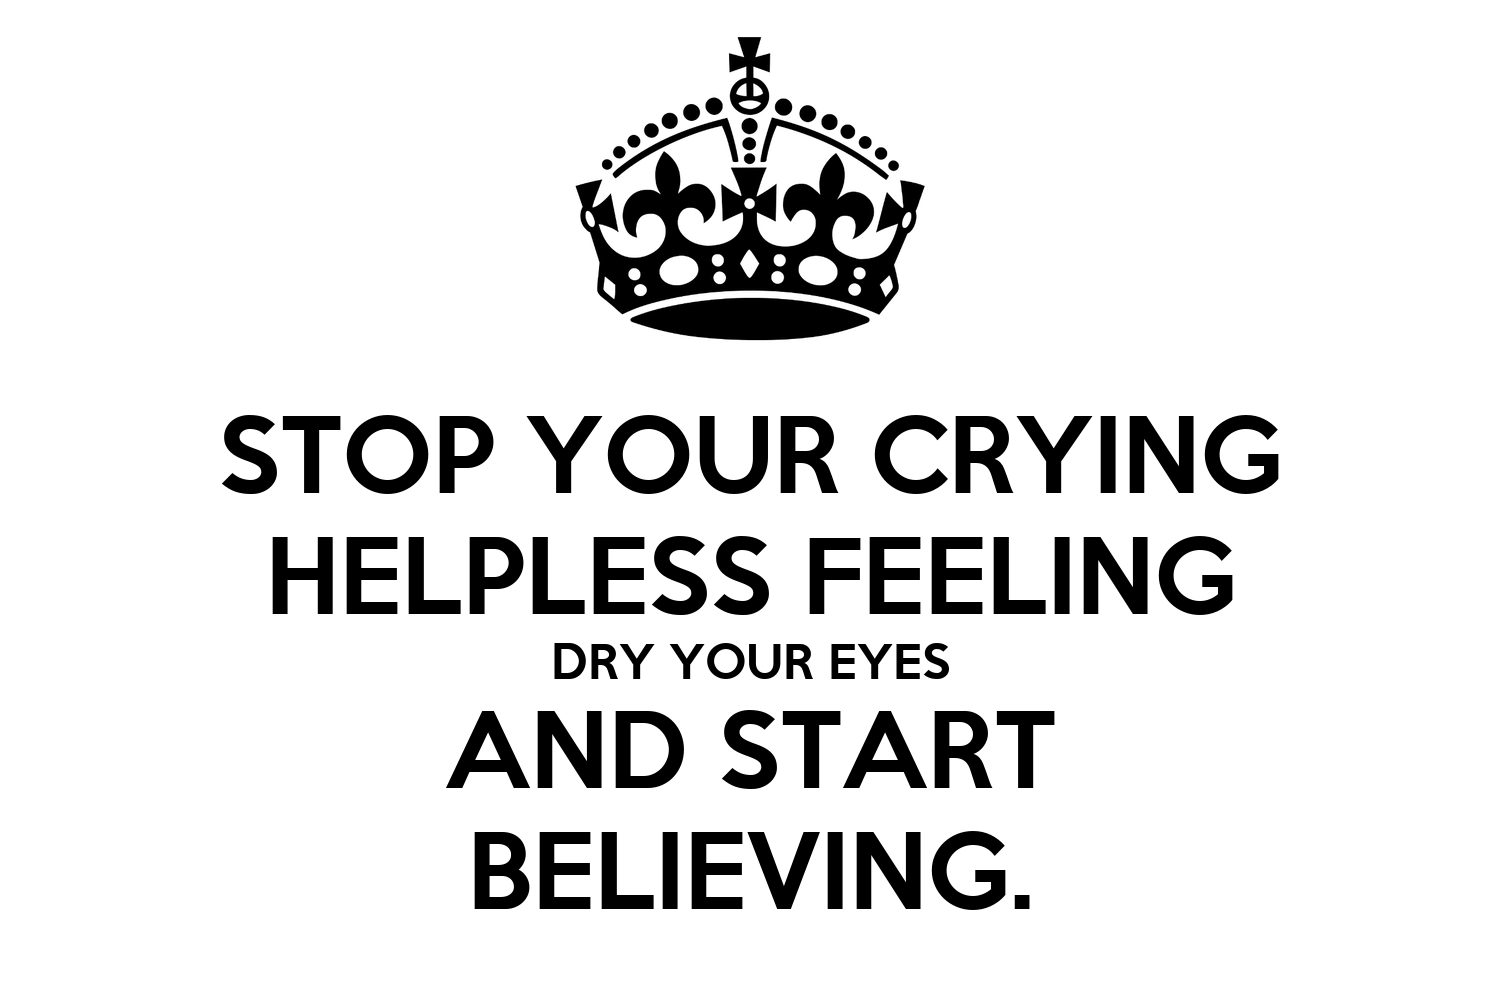 Stop Your Crying Helpless Feeling Dry Your Eyes And Start